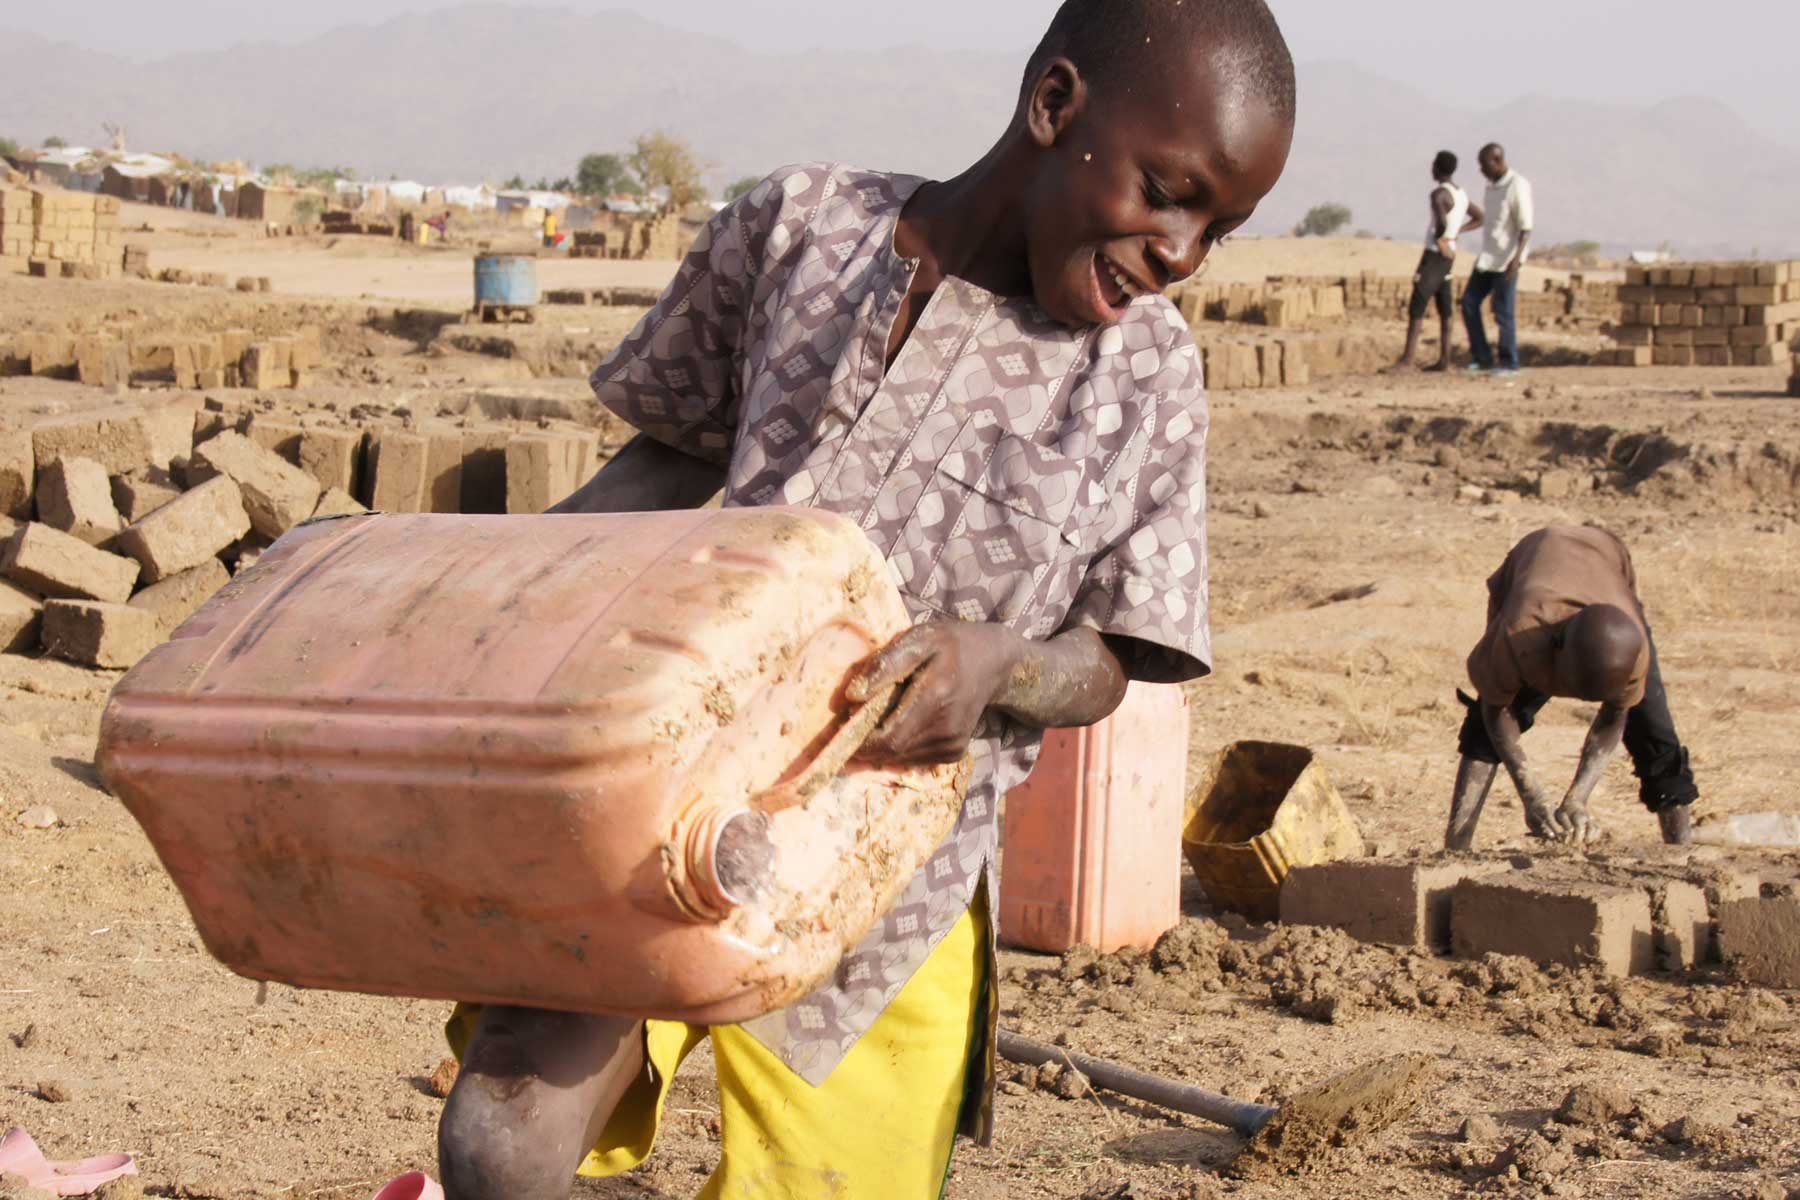 At the tap stand, predominantly women and girls wait to fill their jerry cans to cook and wash for the families.